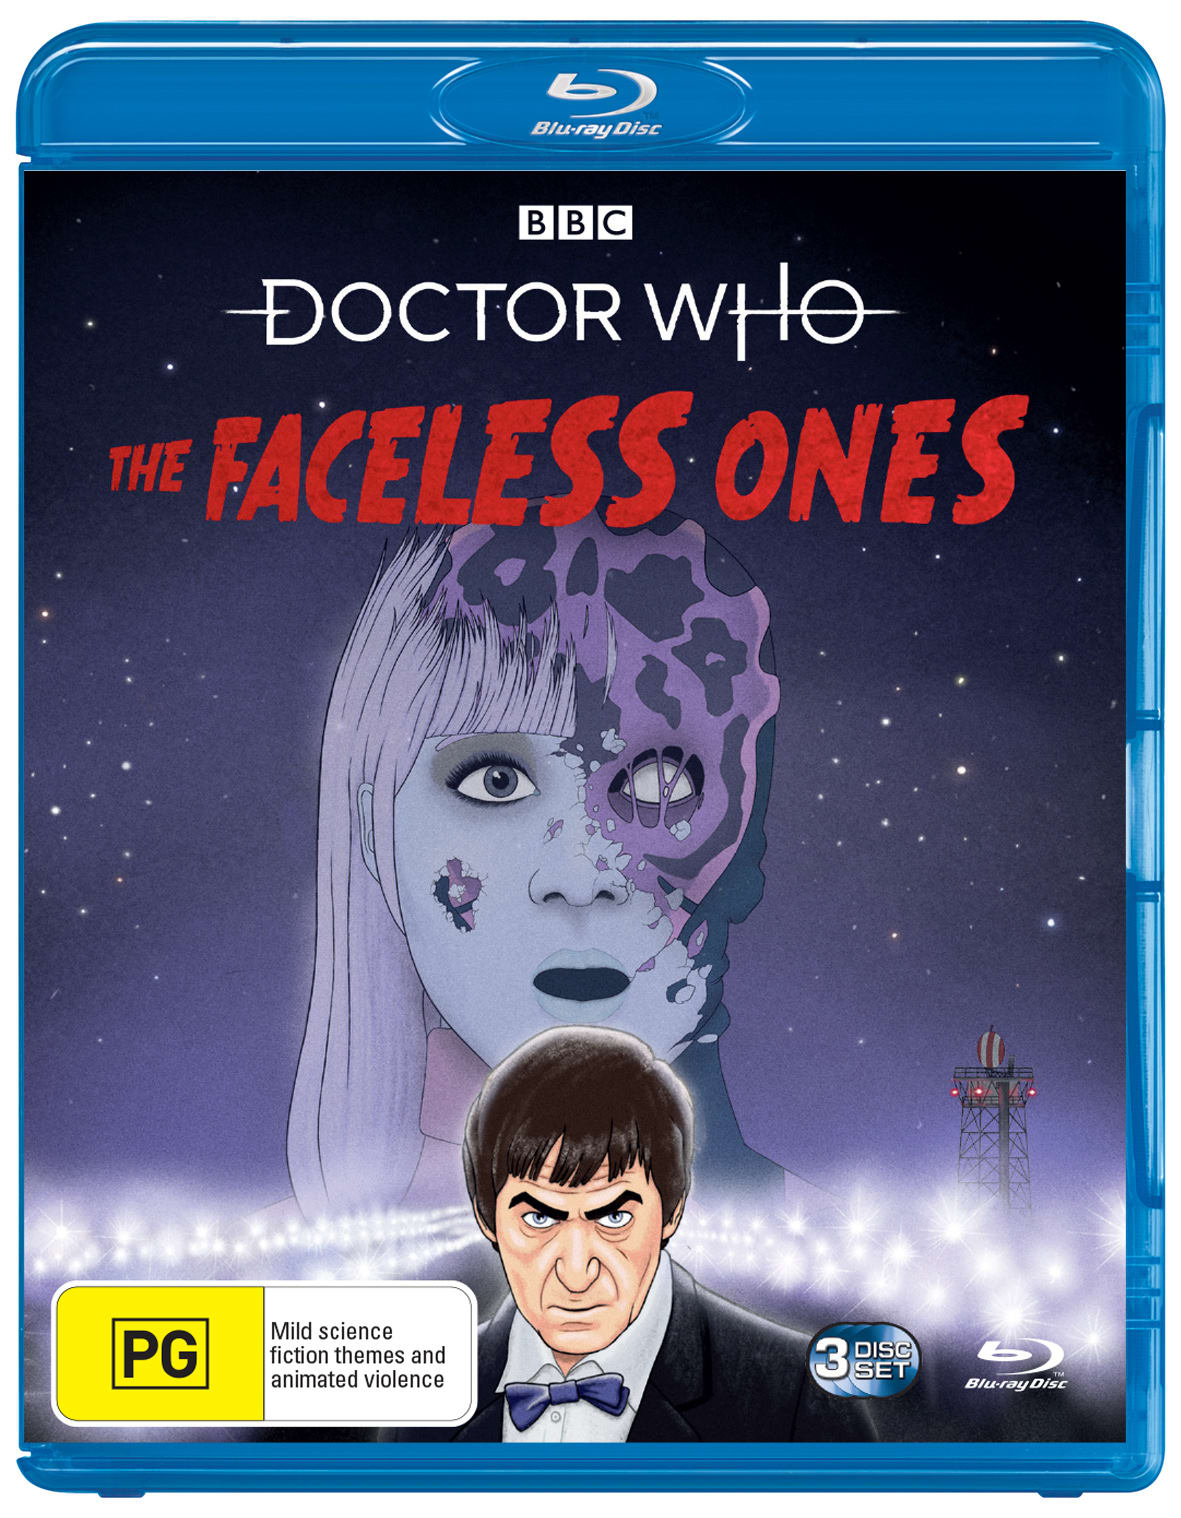 Doctor Who: The Faceless Ones (Box Set) [Blu-ray]